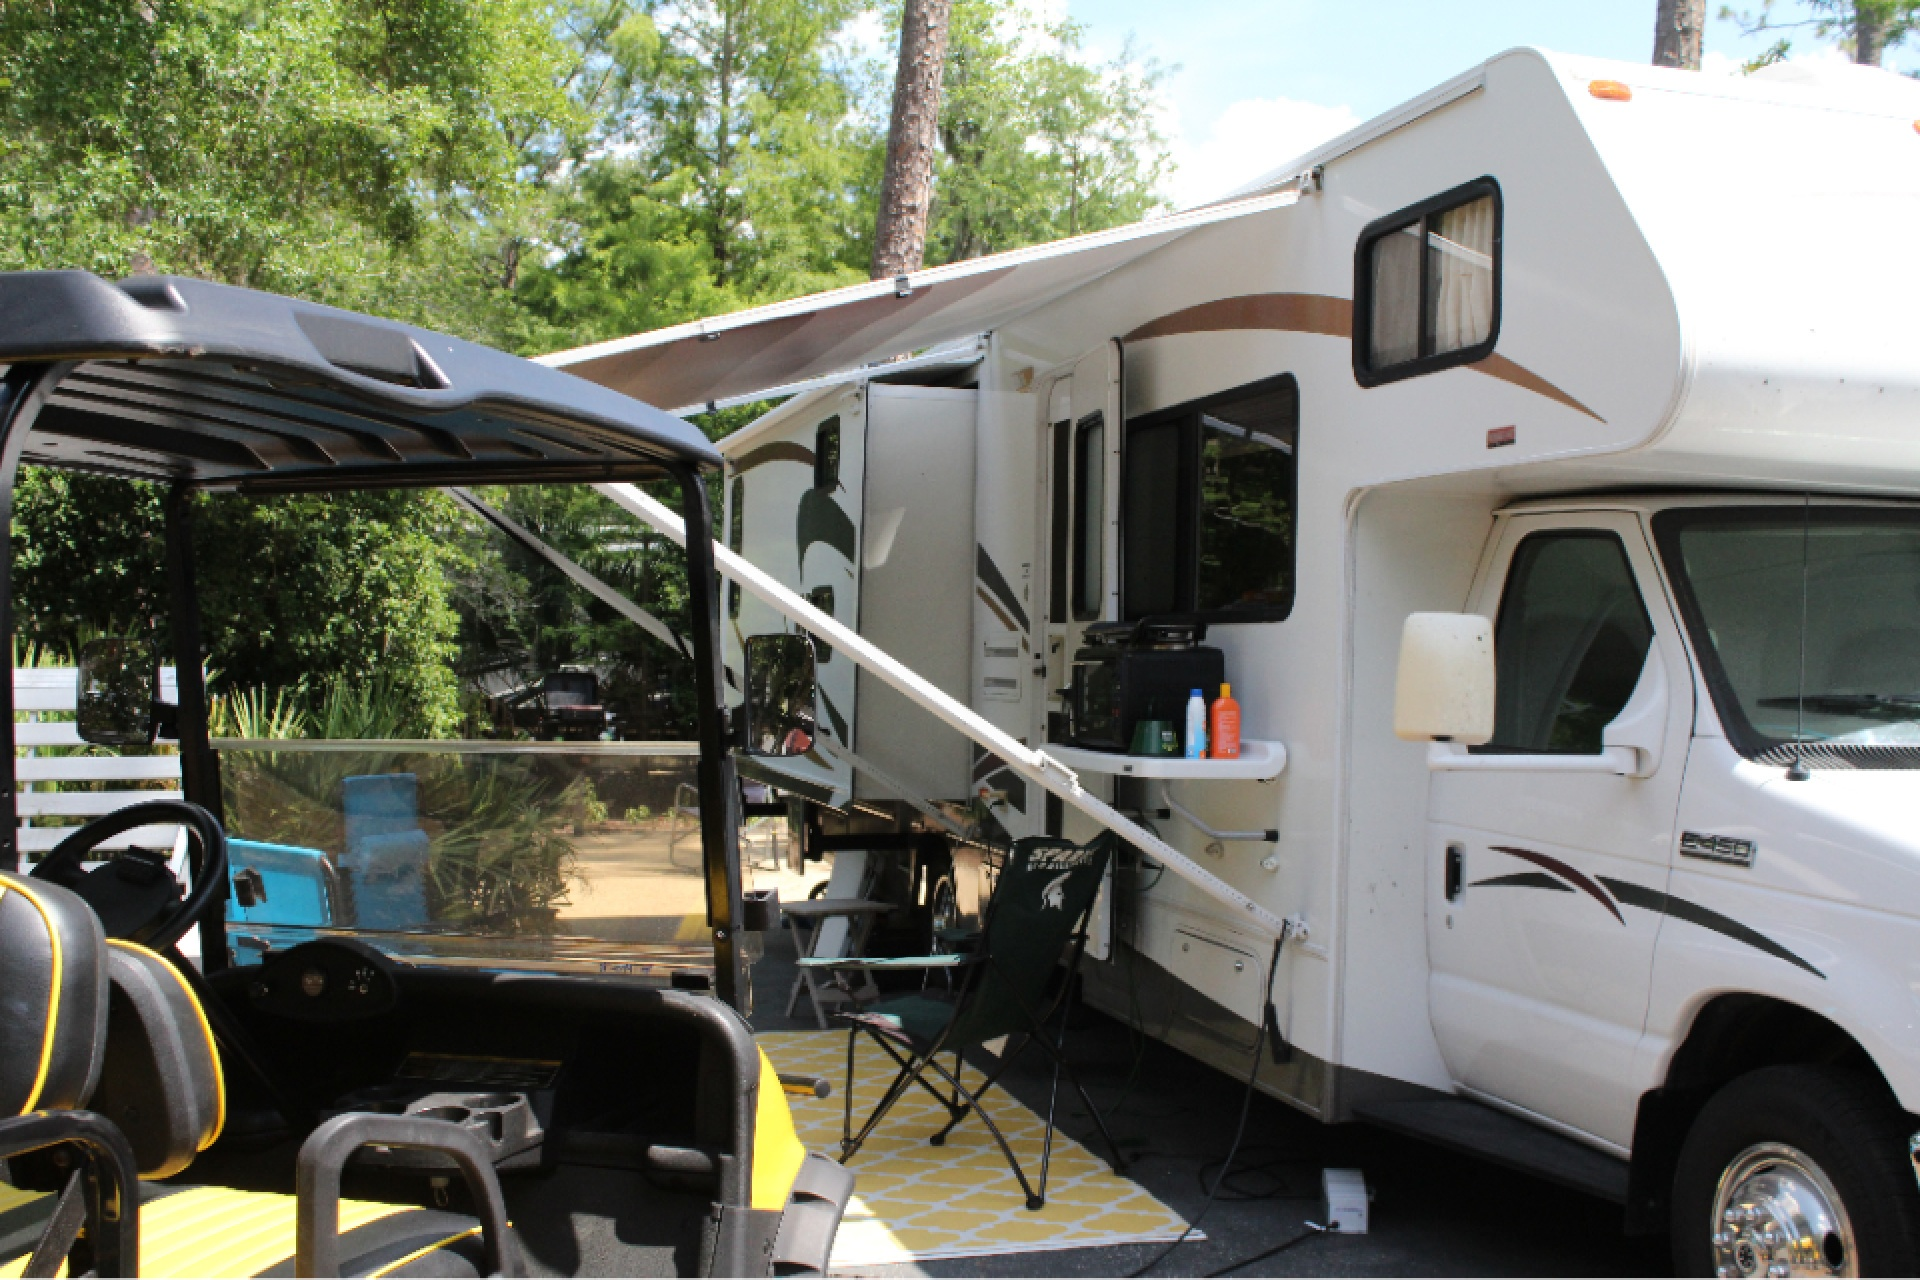 Why Camp at Fort Wilderness Campground